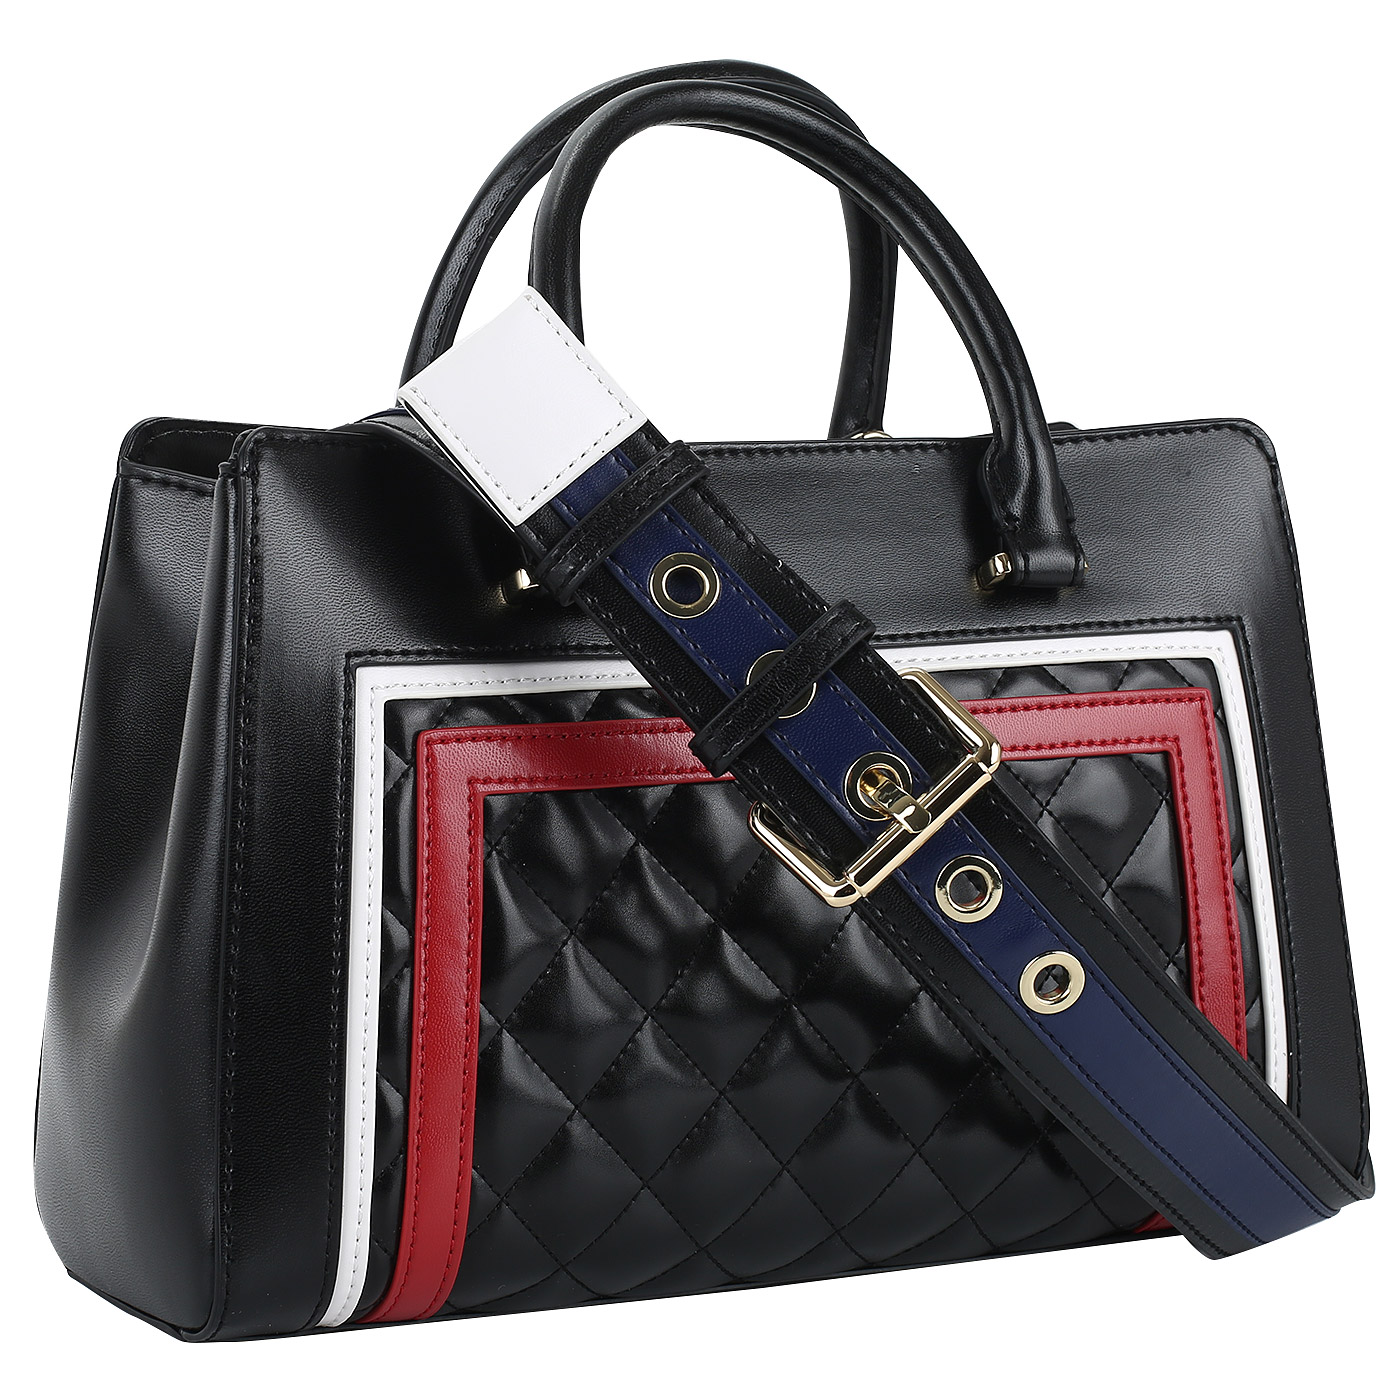 a65bf1208fdd Сумка с широким плечевым ремнем Love Moschino Striped Quilted ...